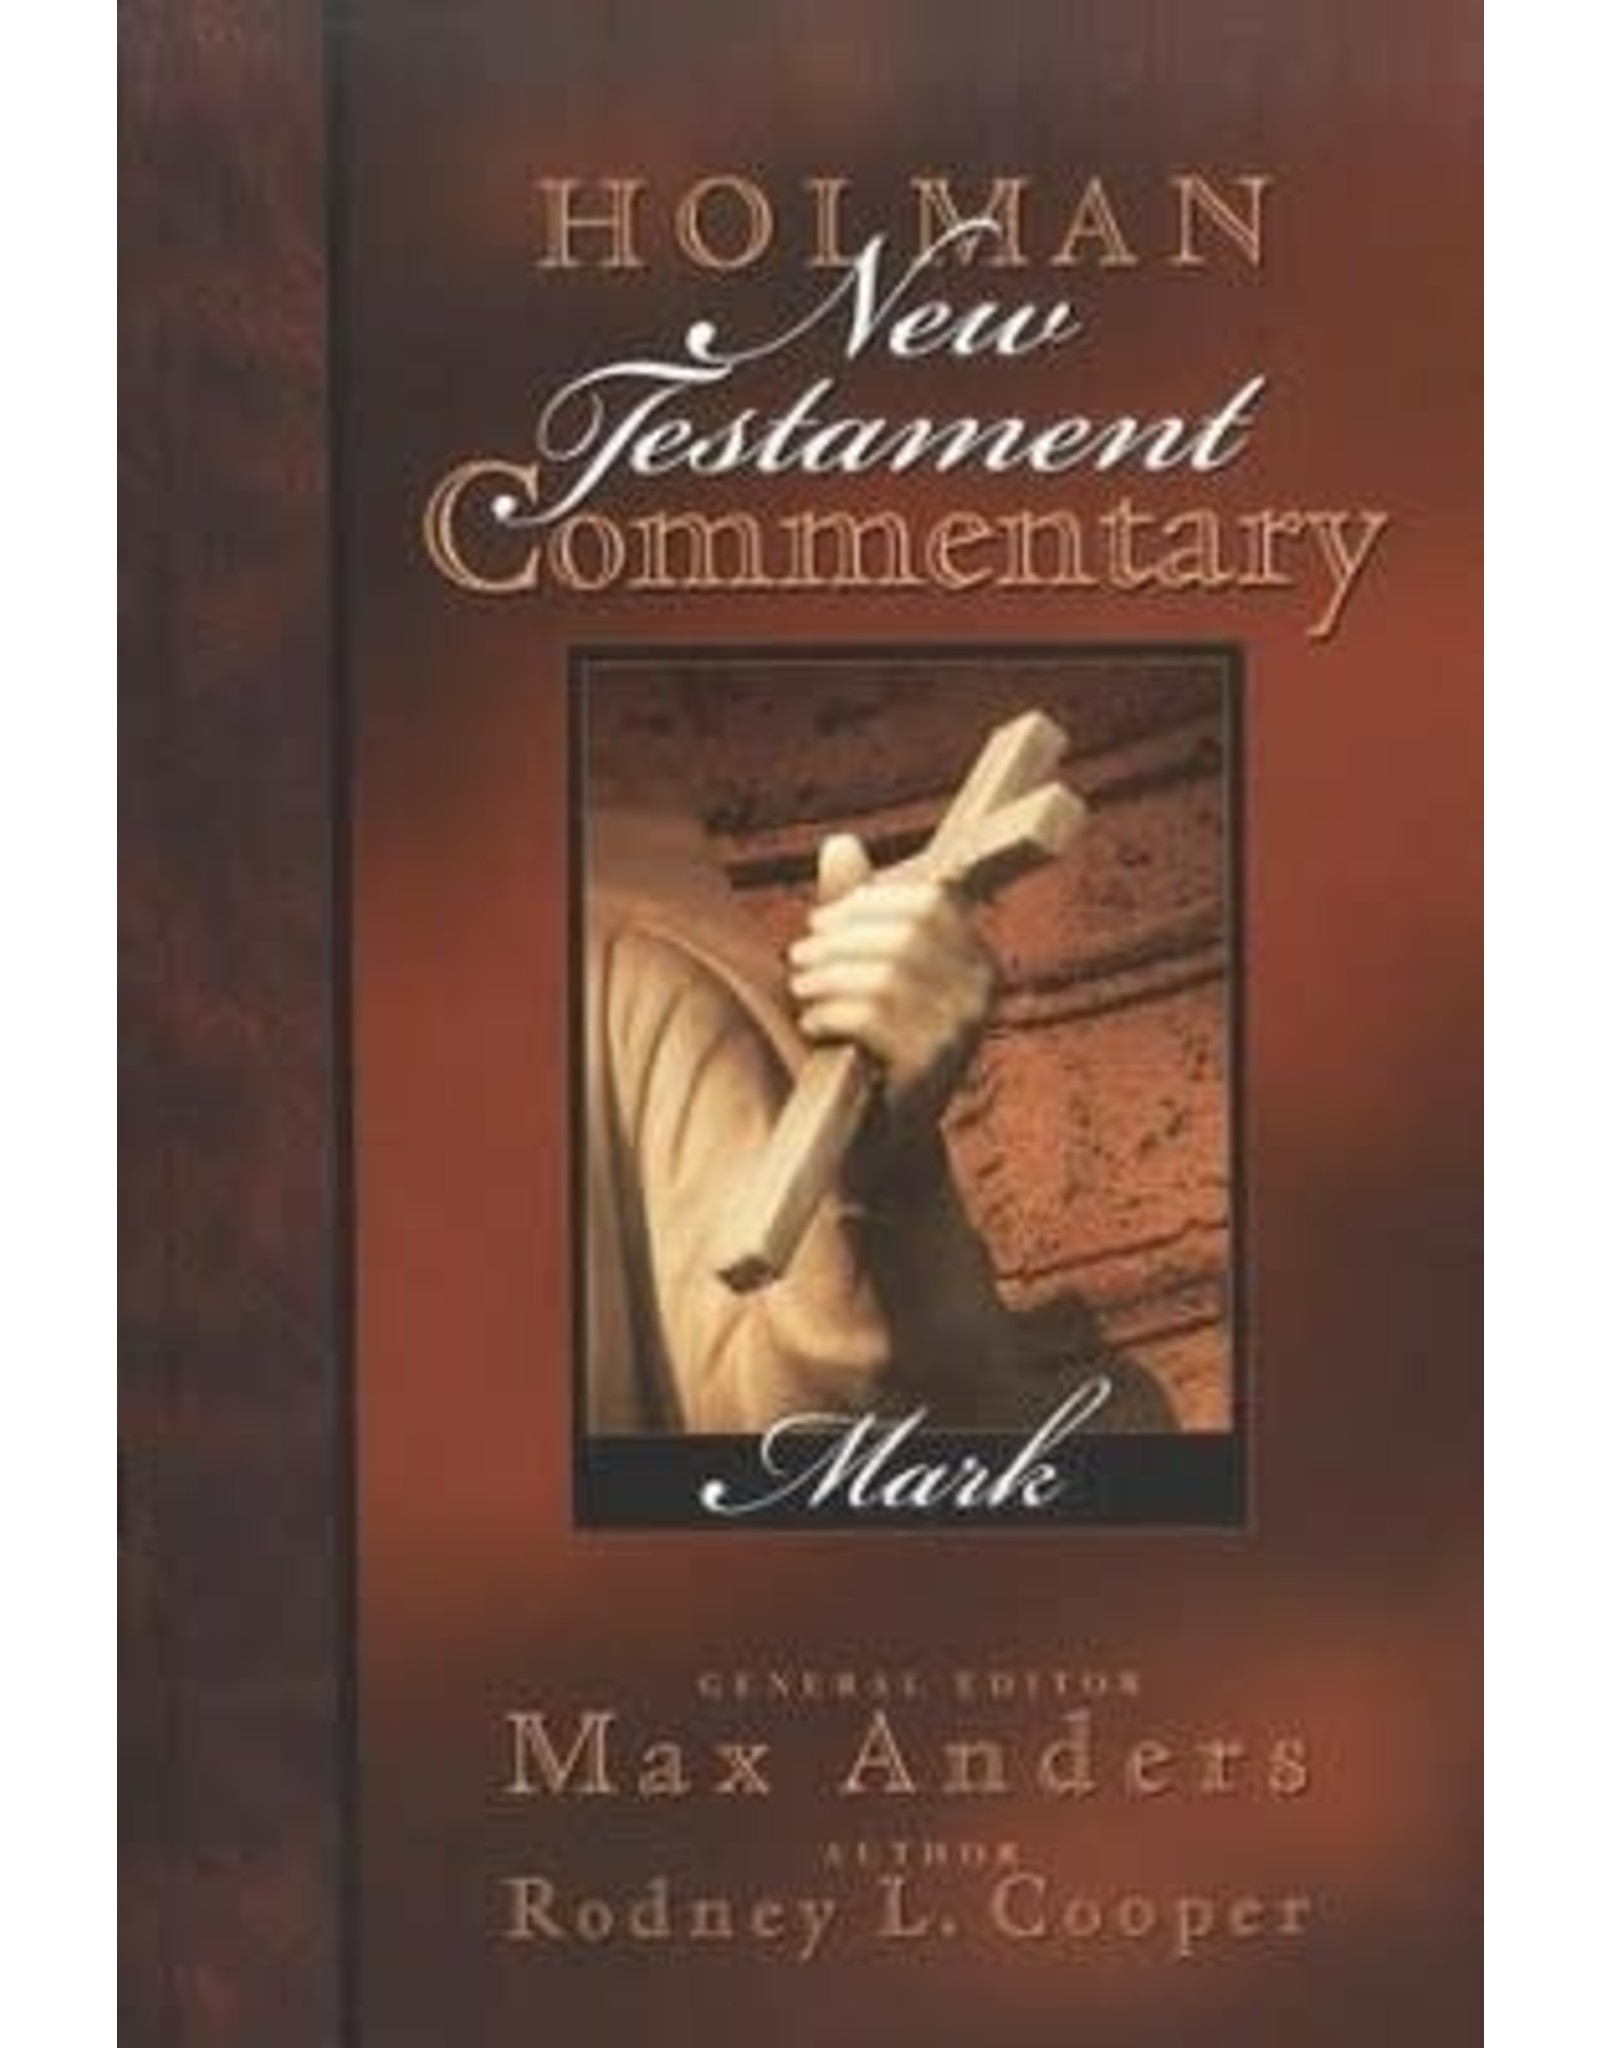 Anders Holman New Testament Commentary: Mark